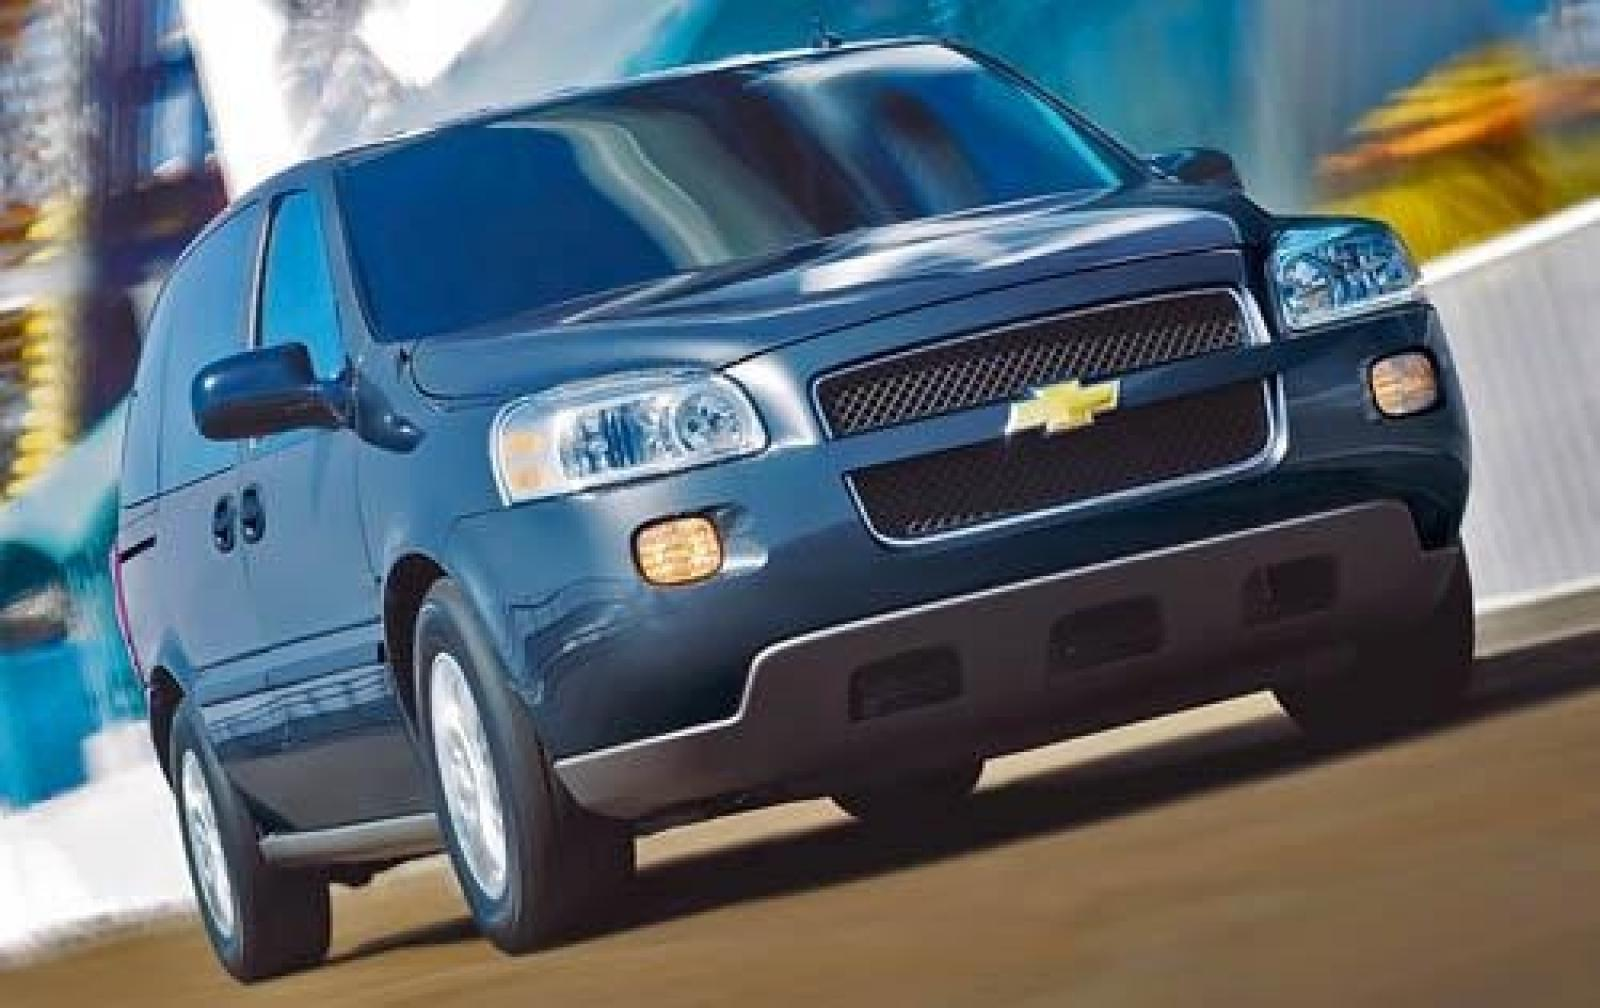 2008 chevrolet uplander information and photos zombiedrive 800 1024 1280 1600 origin 2008 chevrolet uplander publicscrutiny Choice Image